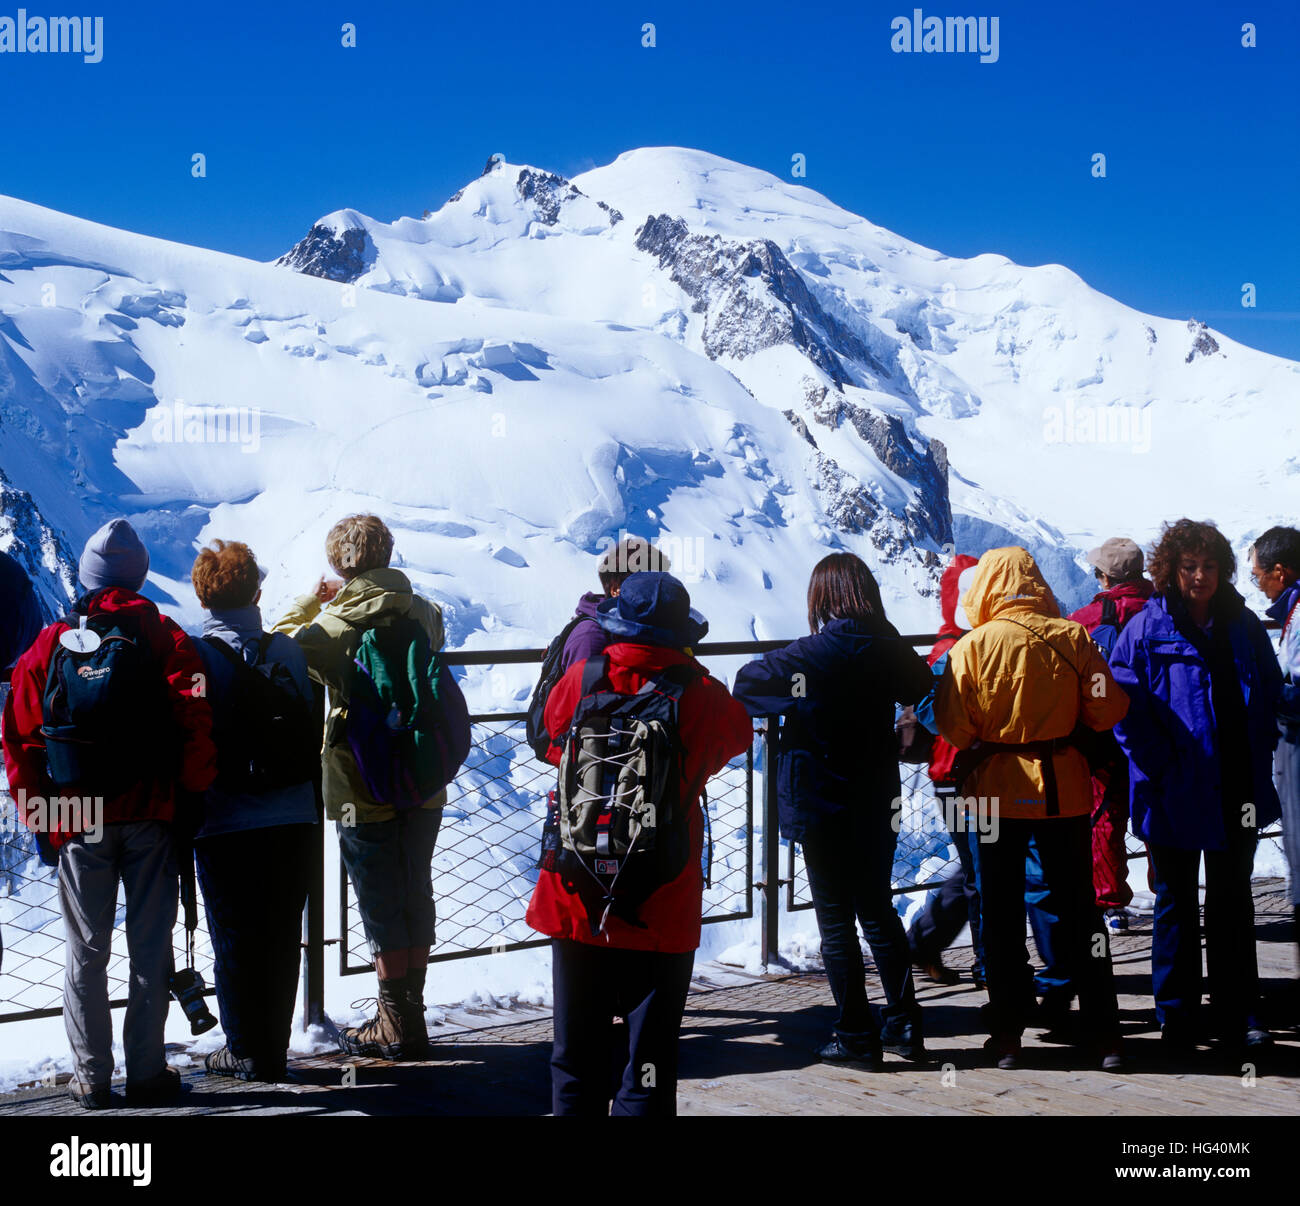 Tourists viewing Mont Blanc from Aguile du Midi, France - Stock Image